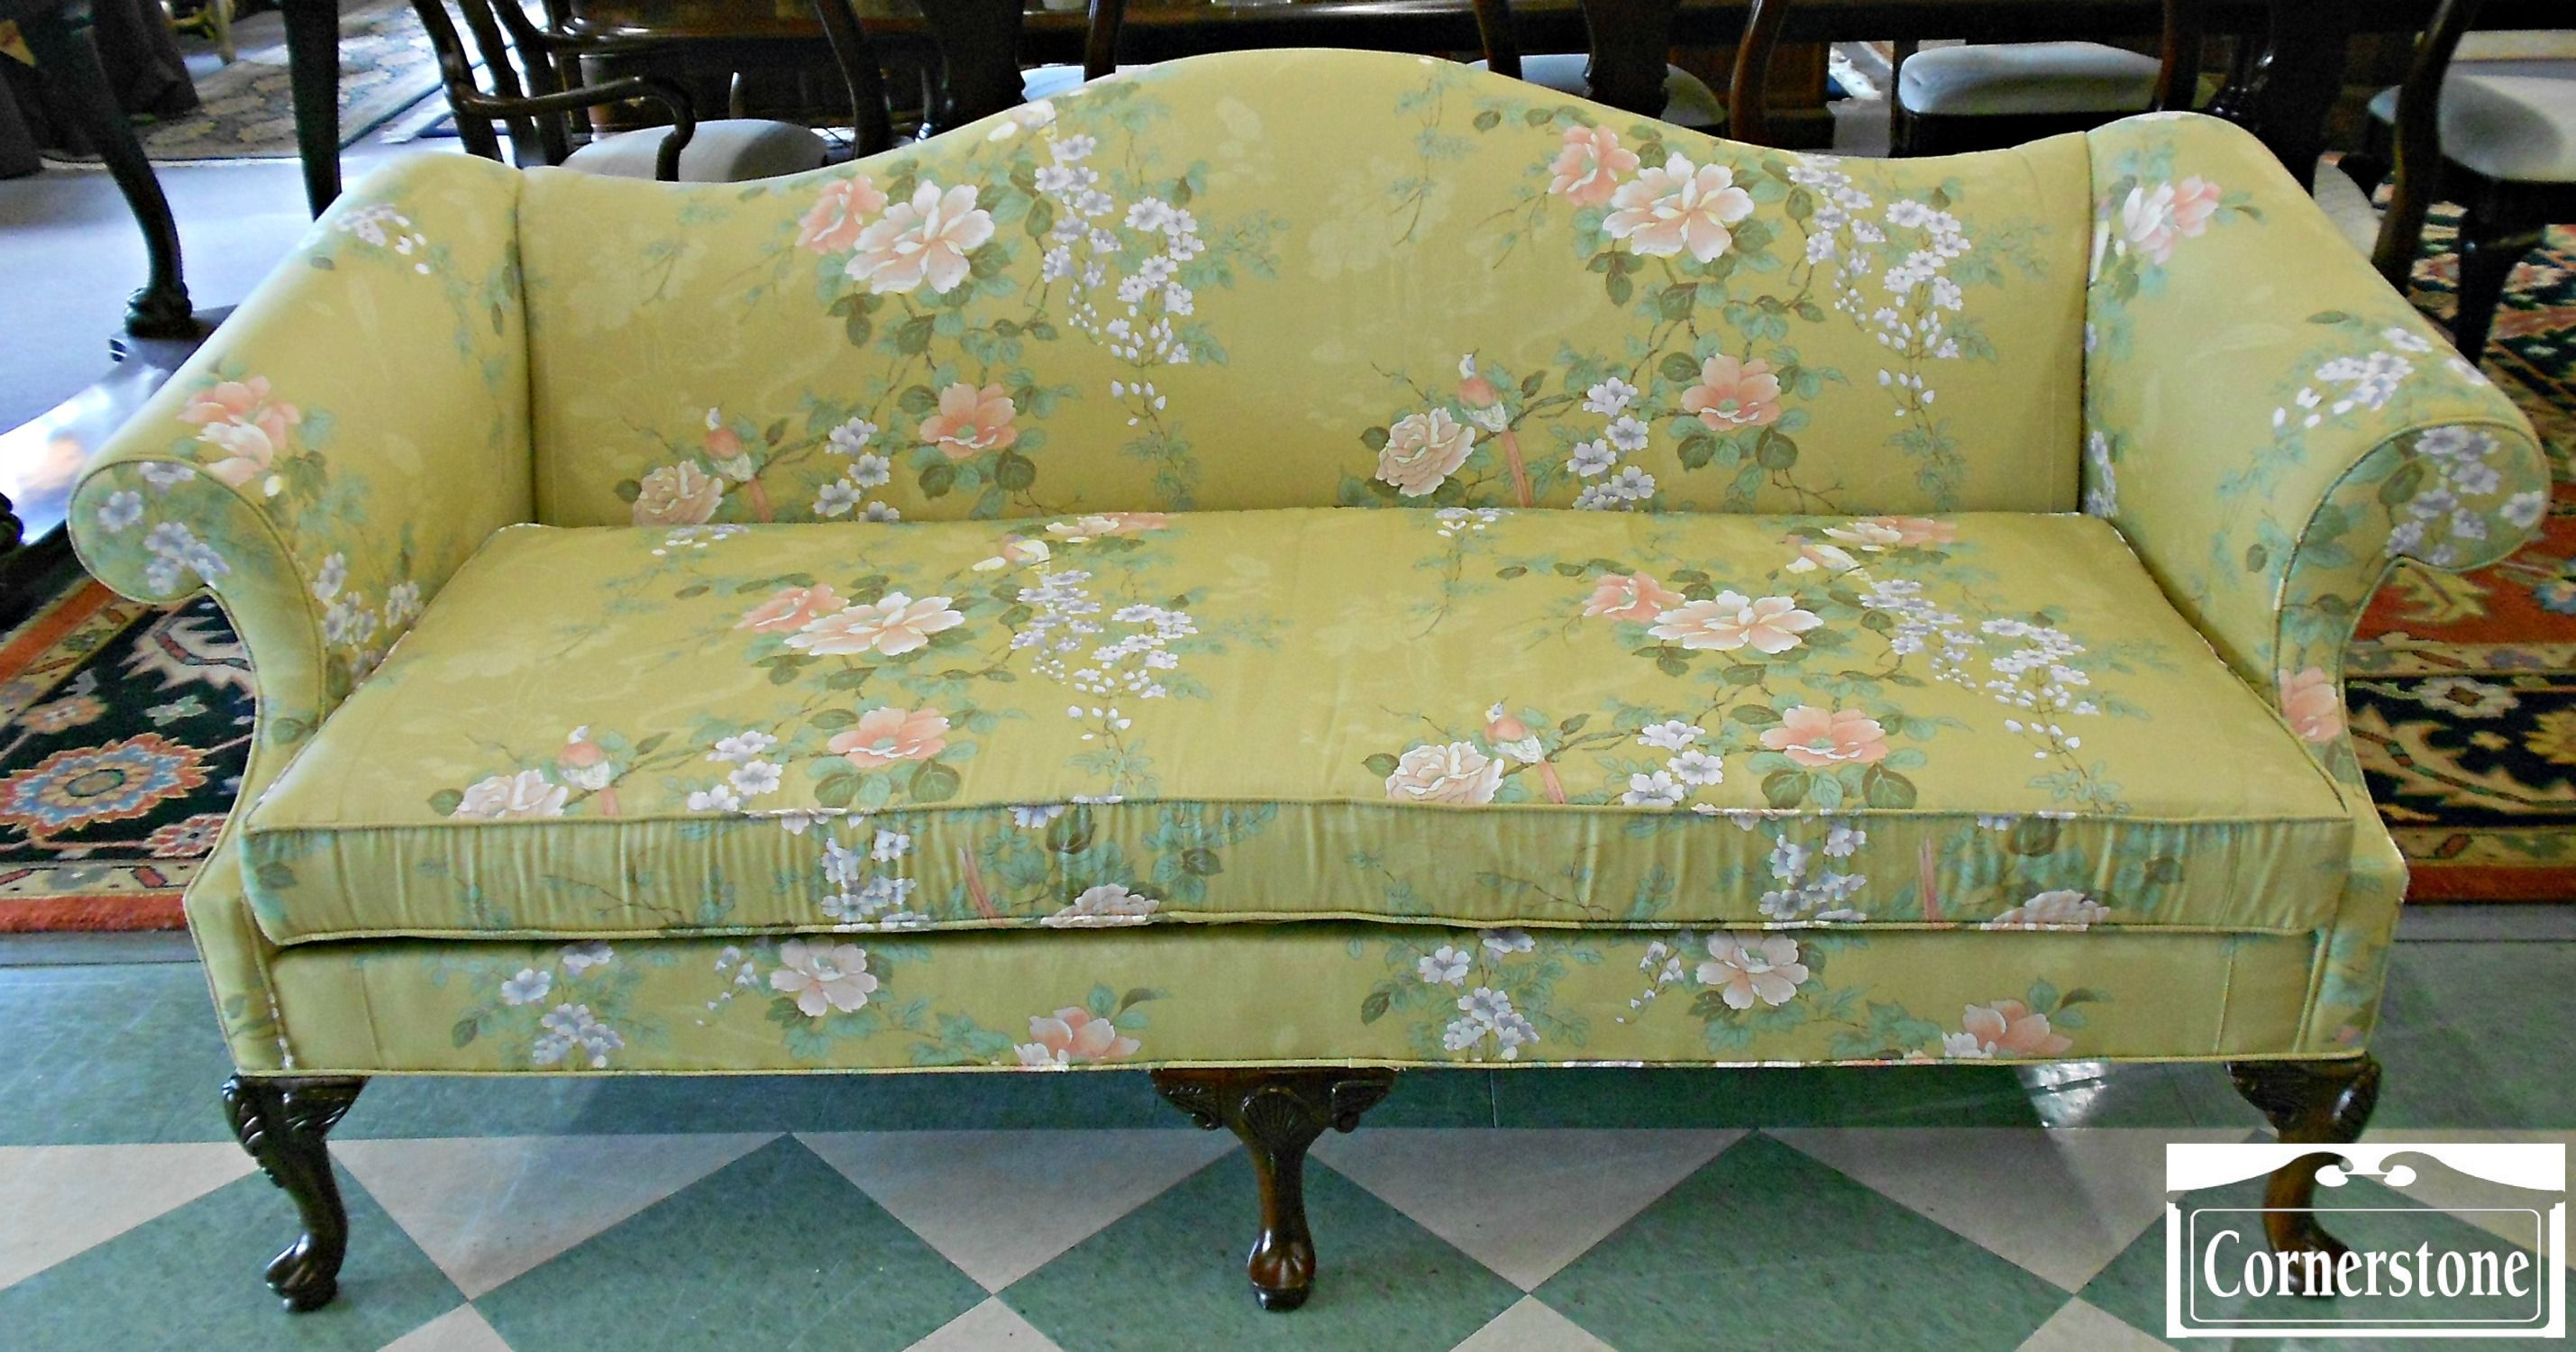 Queen Anne Camelback Sofa Slipcover Google Search Slipcovered